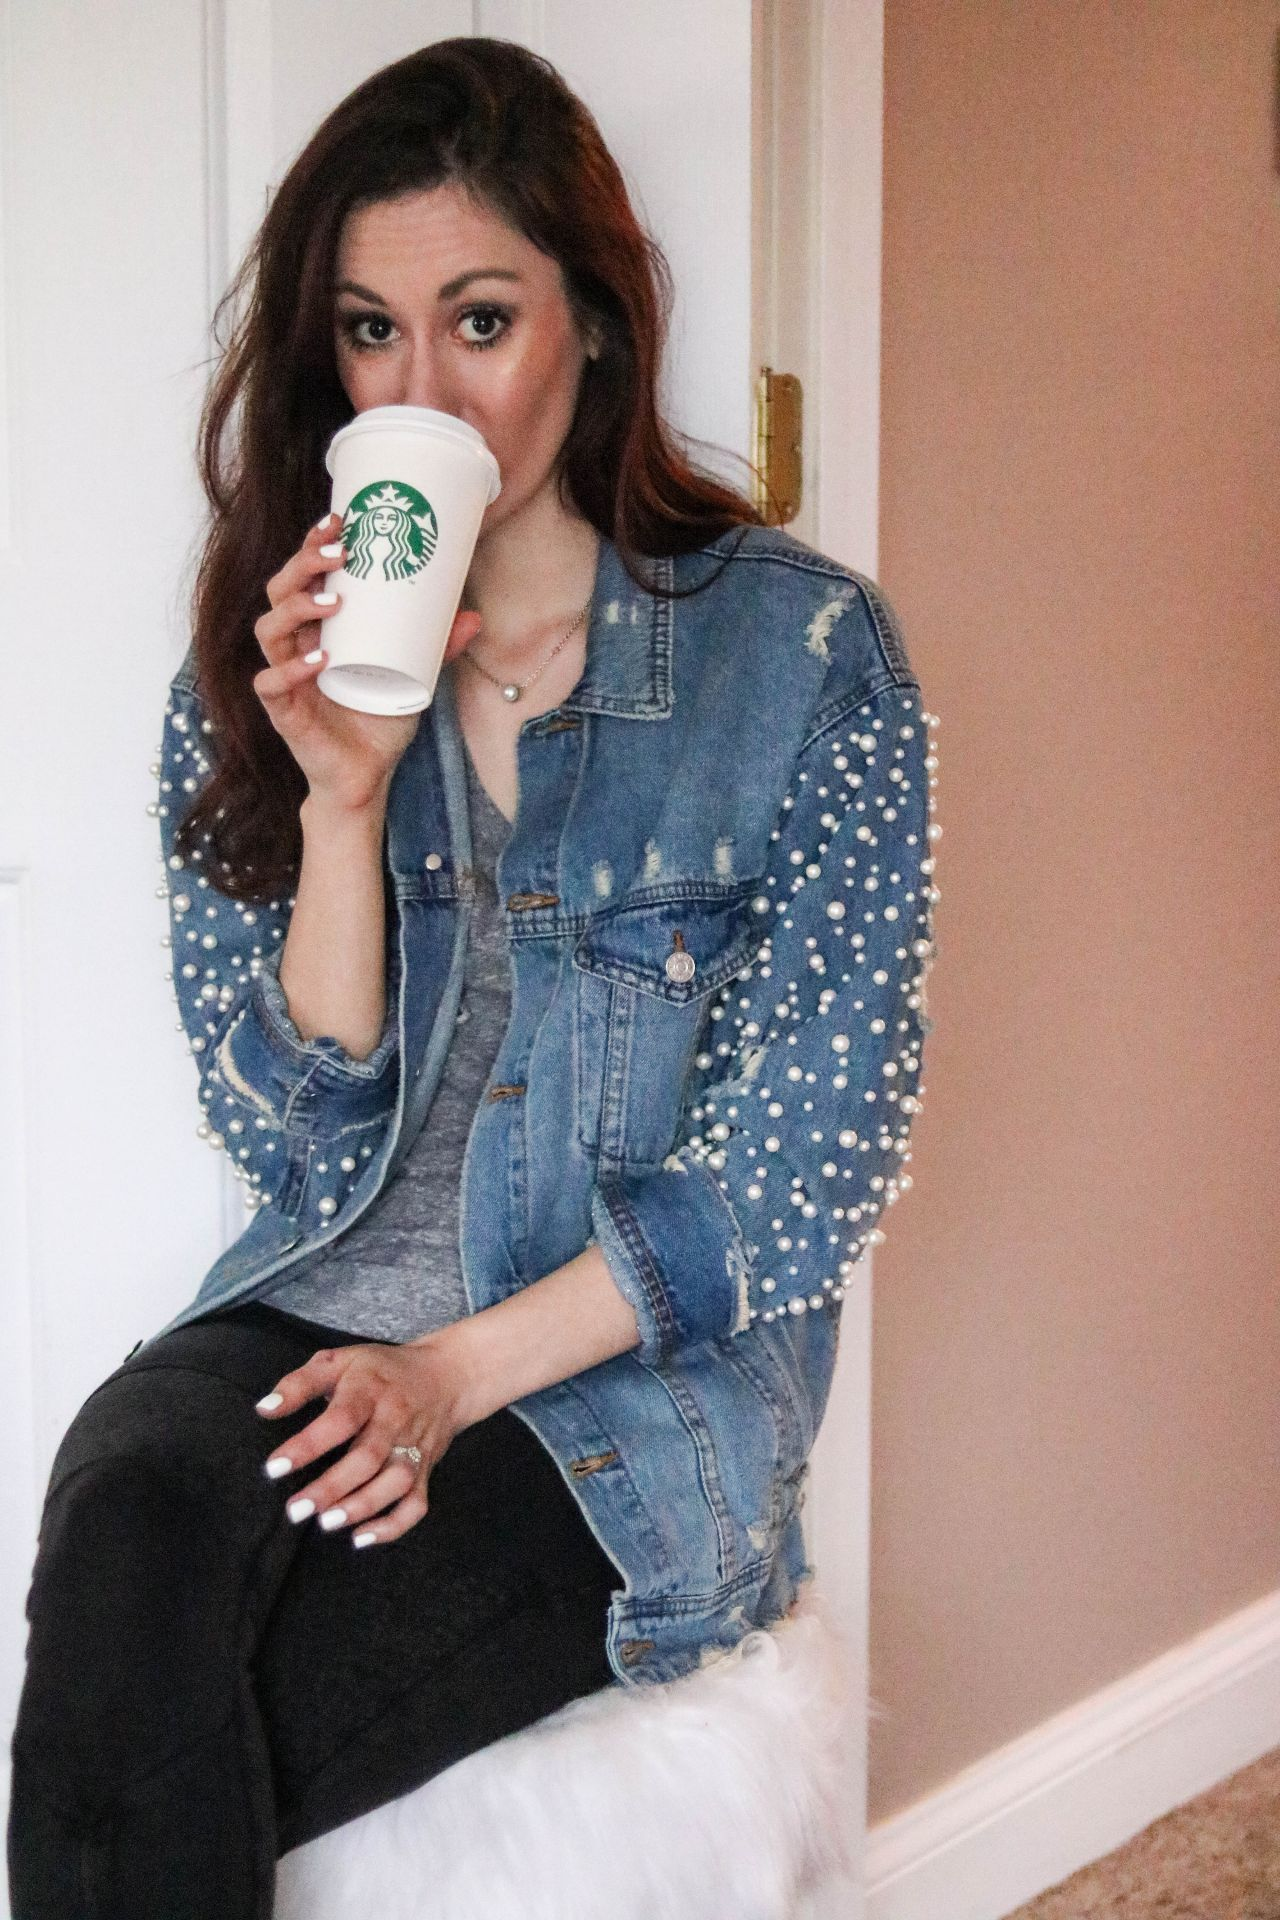 Things I Love - February 2018, Pearl Jean Jacket, Starbucks Medicine Ball, Lancome Highlighter + MORE